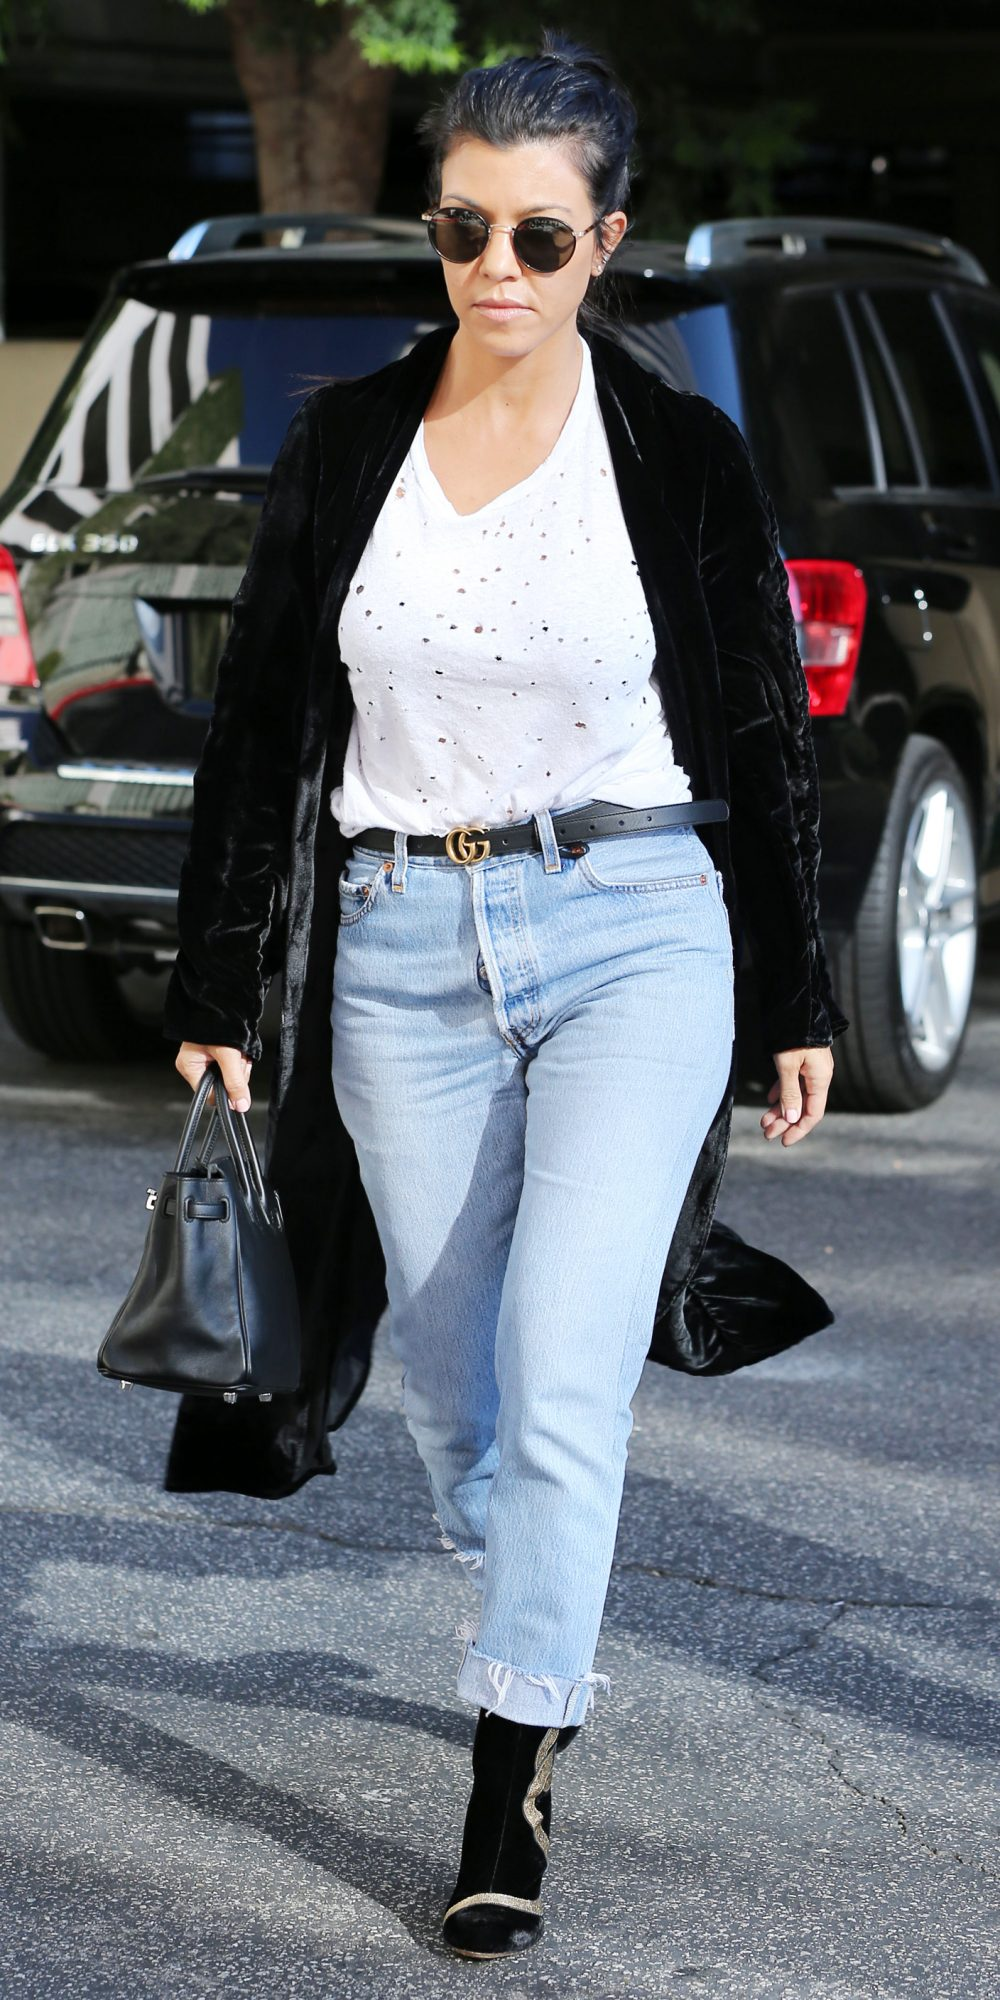 Kourtney Kardashian Elevates Casual Separates with the Addition of a Velvet Topper